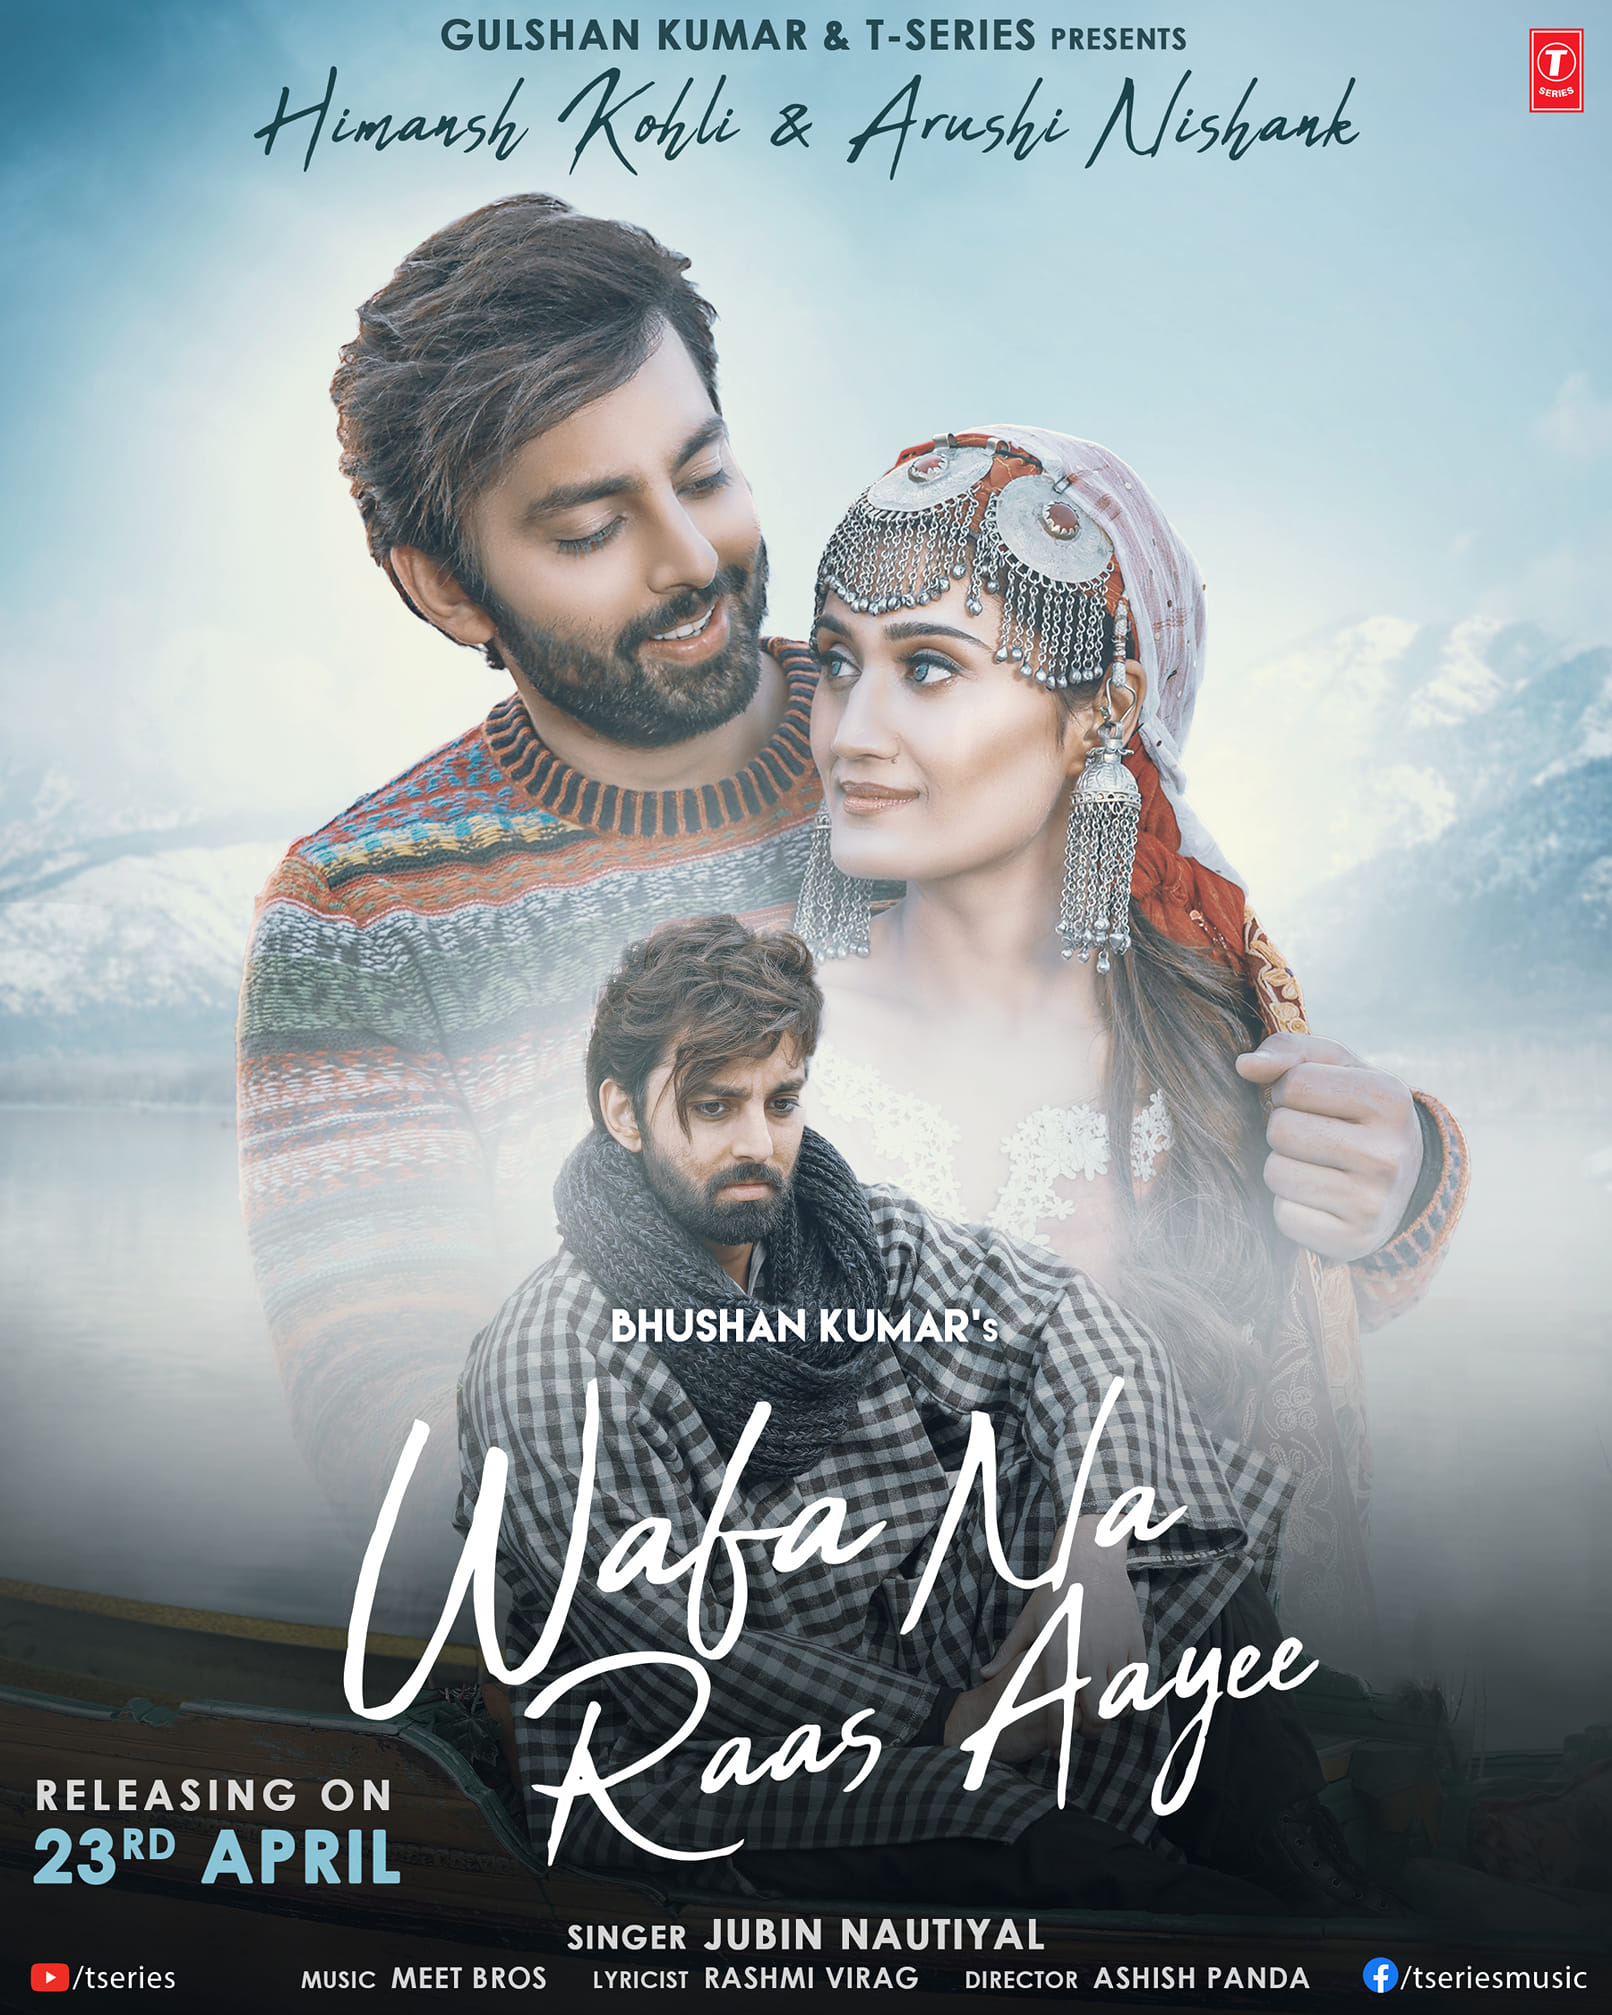 Wafa Na Raas Aayee By Jubin Nautiyal Official Music Video (2021) HD